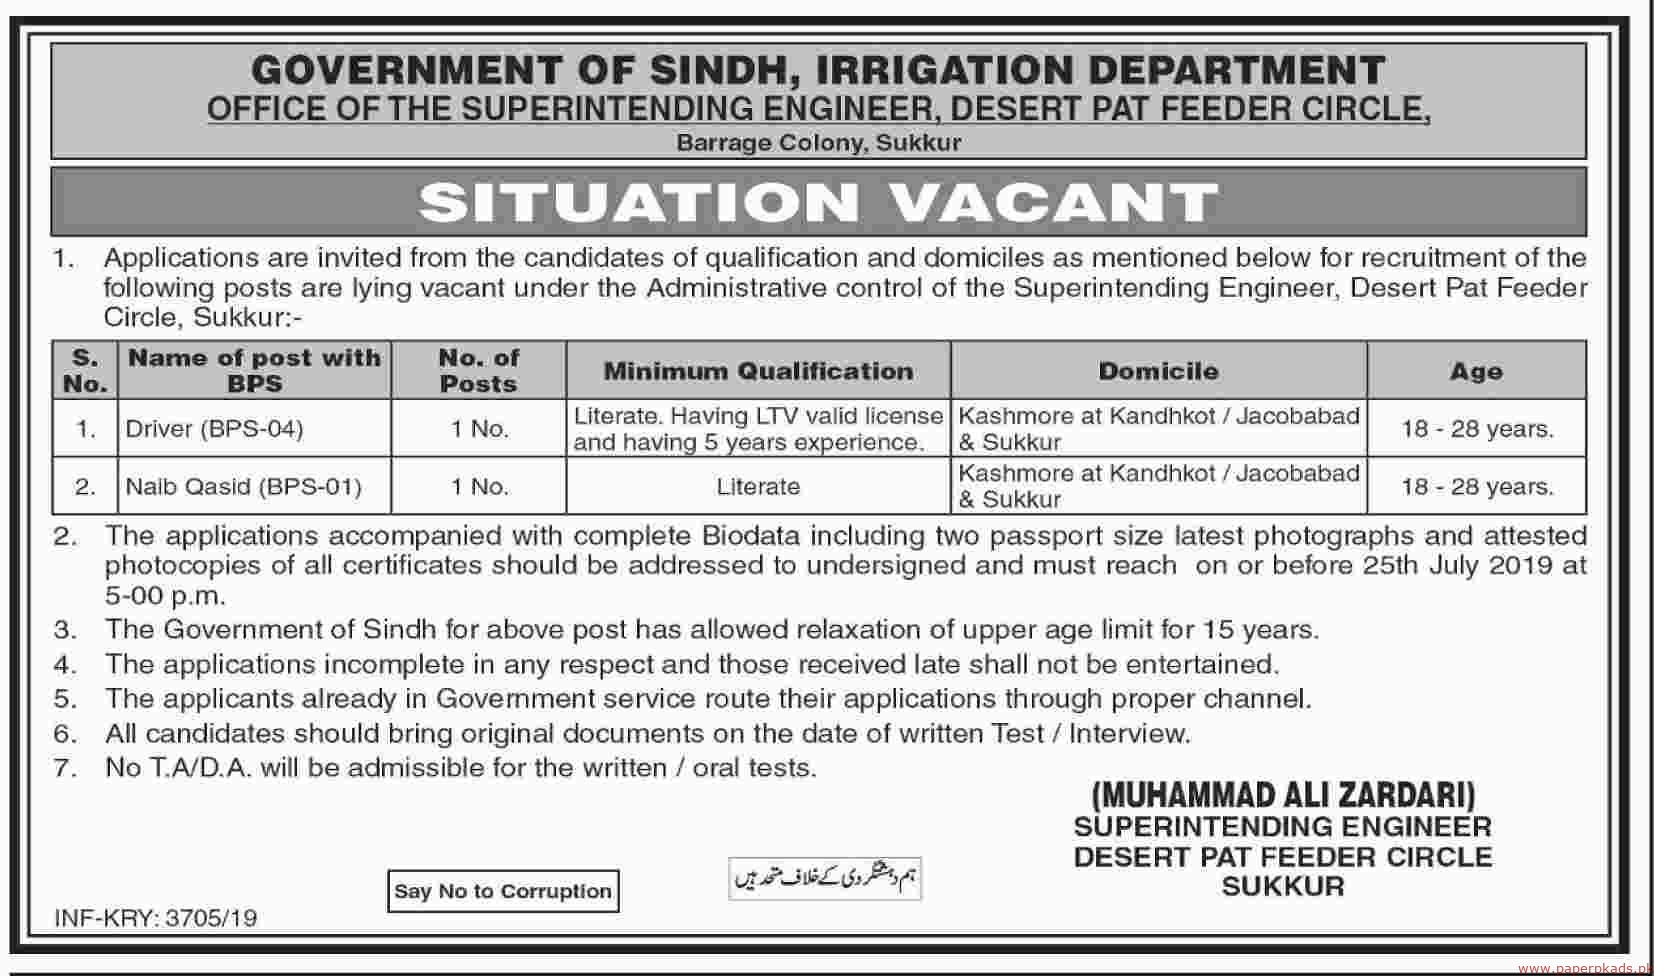 Government of Sindh Irrigation Department Sukkur Jobs Latest 2019